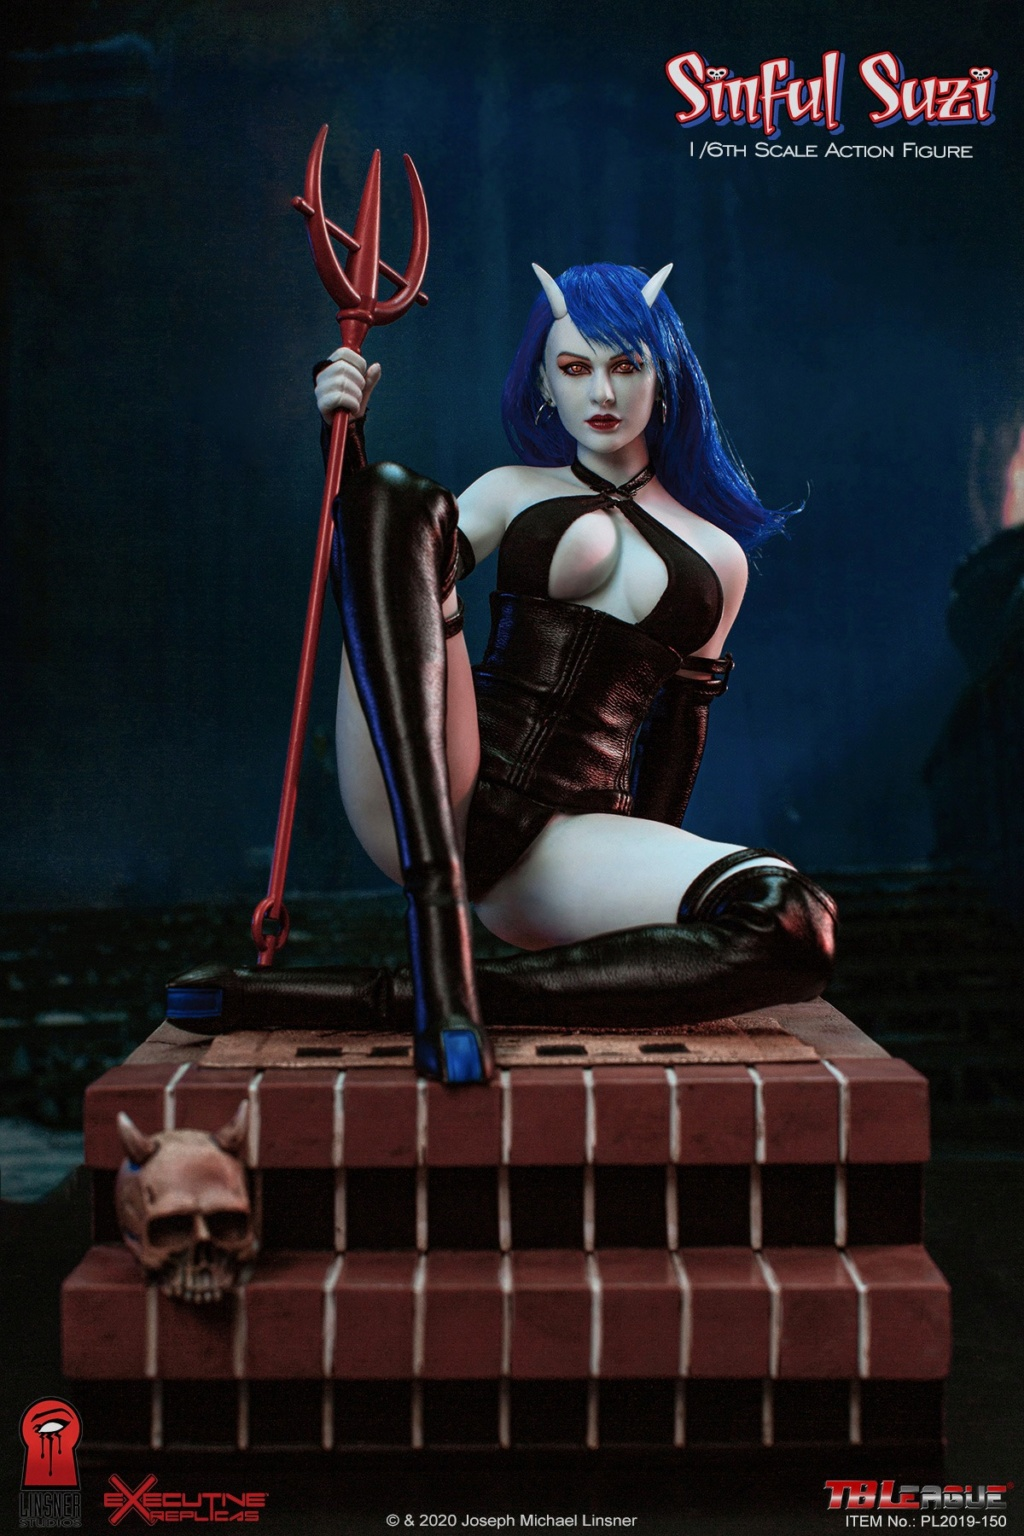 TBLeague - NEW PRODUCT: TBLeague Sinful Suzi 1/6 Scale Action Figure (PL2019-150) 18430610